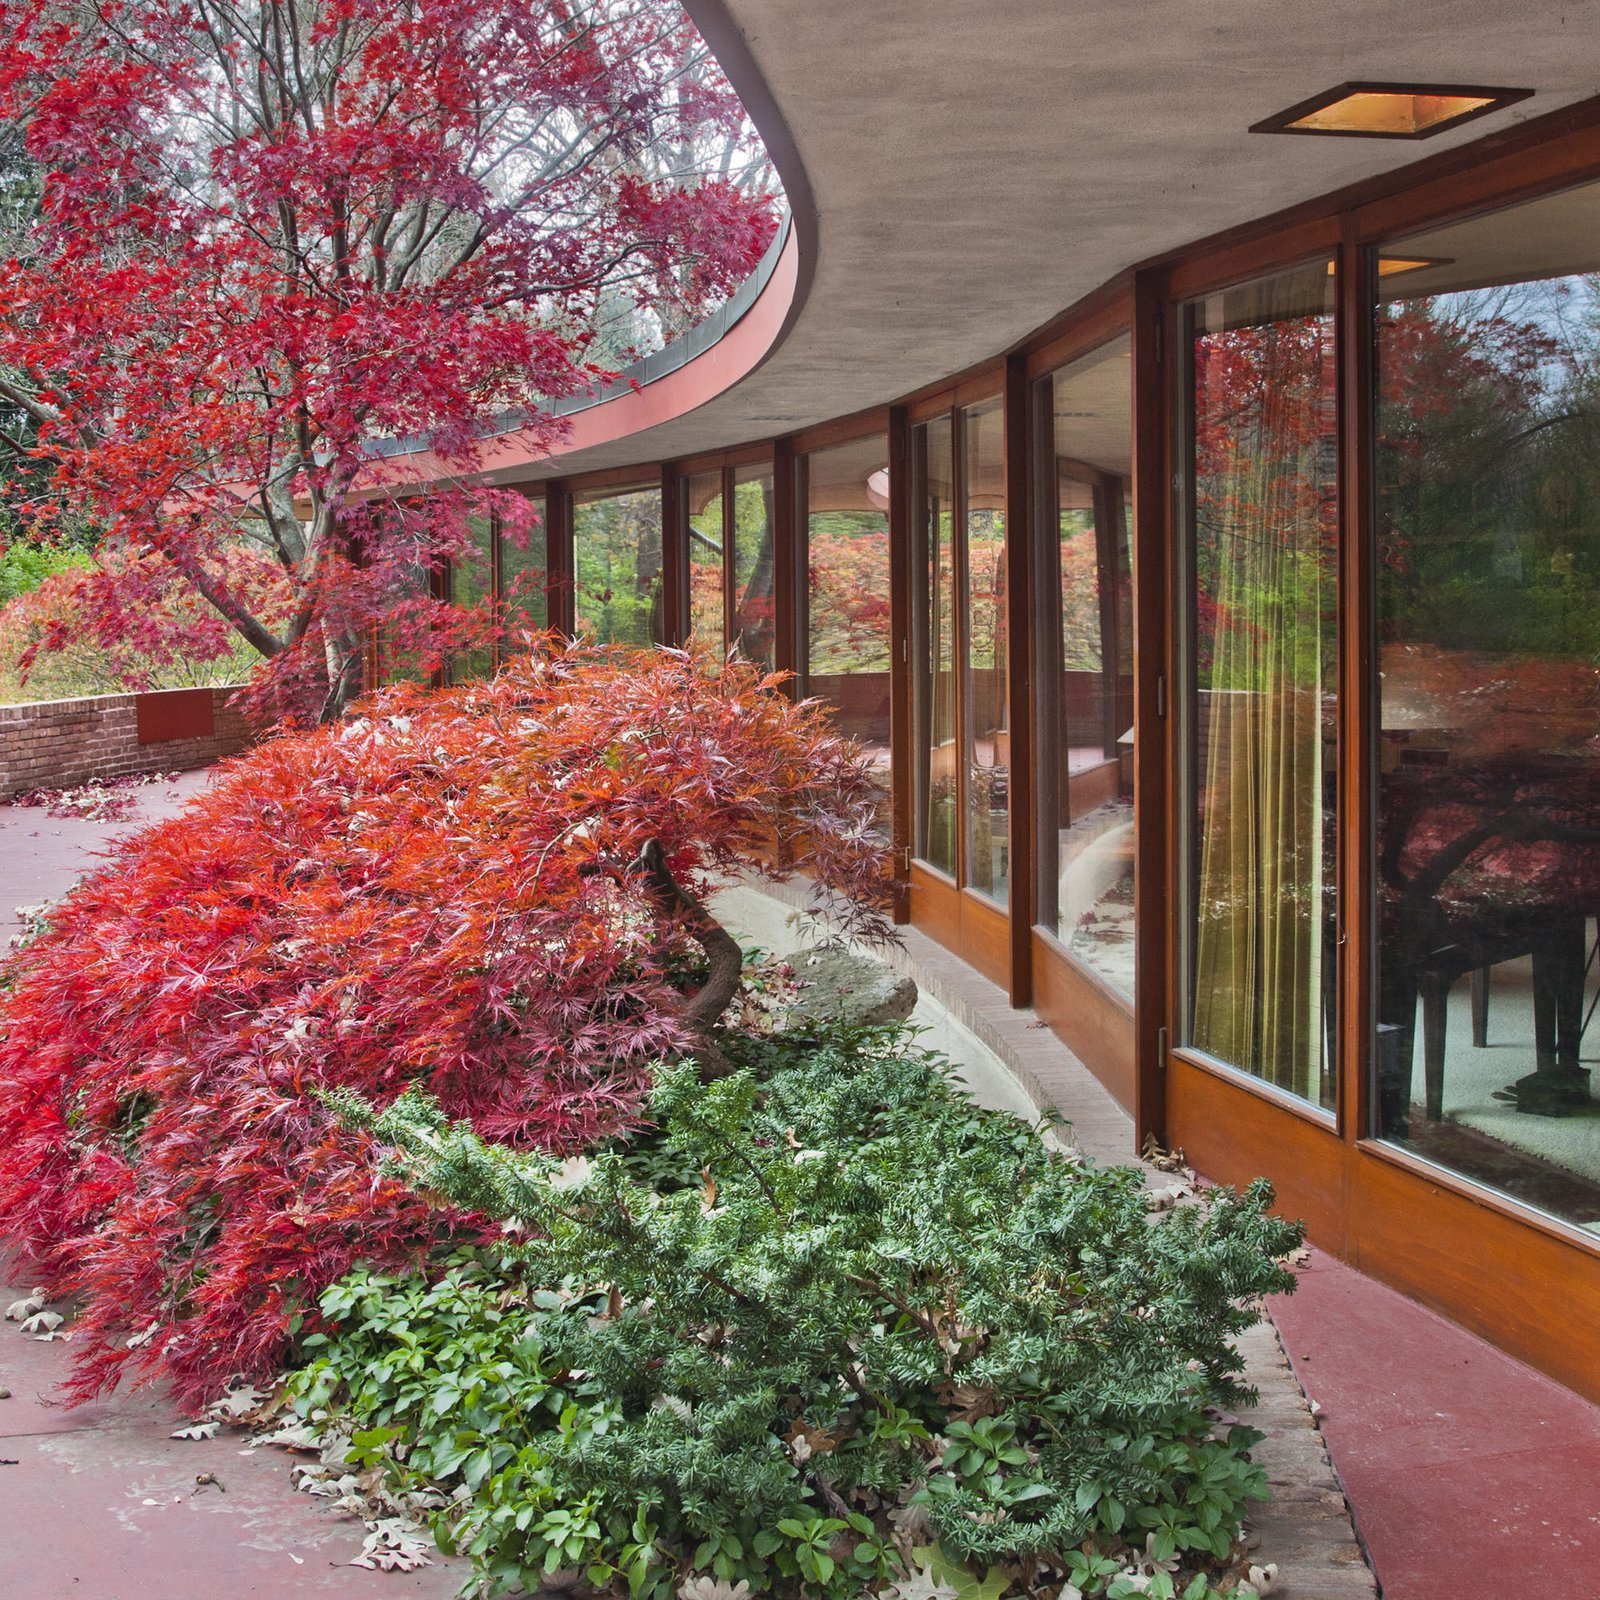 Outdoor, Concrete Patio, Porch, Deck, Trees, Shrubs, and Side Yard The house is one of about 60 so-called Usonian houses that Wright designed for middle-income clients starting in 1936. Image courtesy of Wright Auction House.  Photo 5 of 11 in Dwell Reflects on Frank Lloyd Wright in Honor of the 150th Anniversary of His Birth from Accessible Frank Lloyd Wright House in Illinois Is Reborn as a Museum